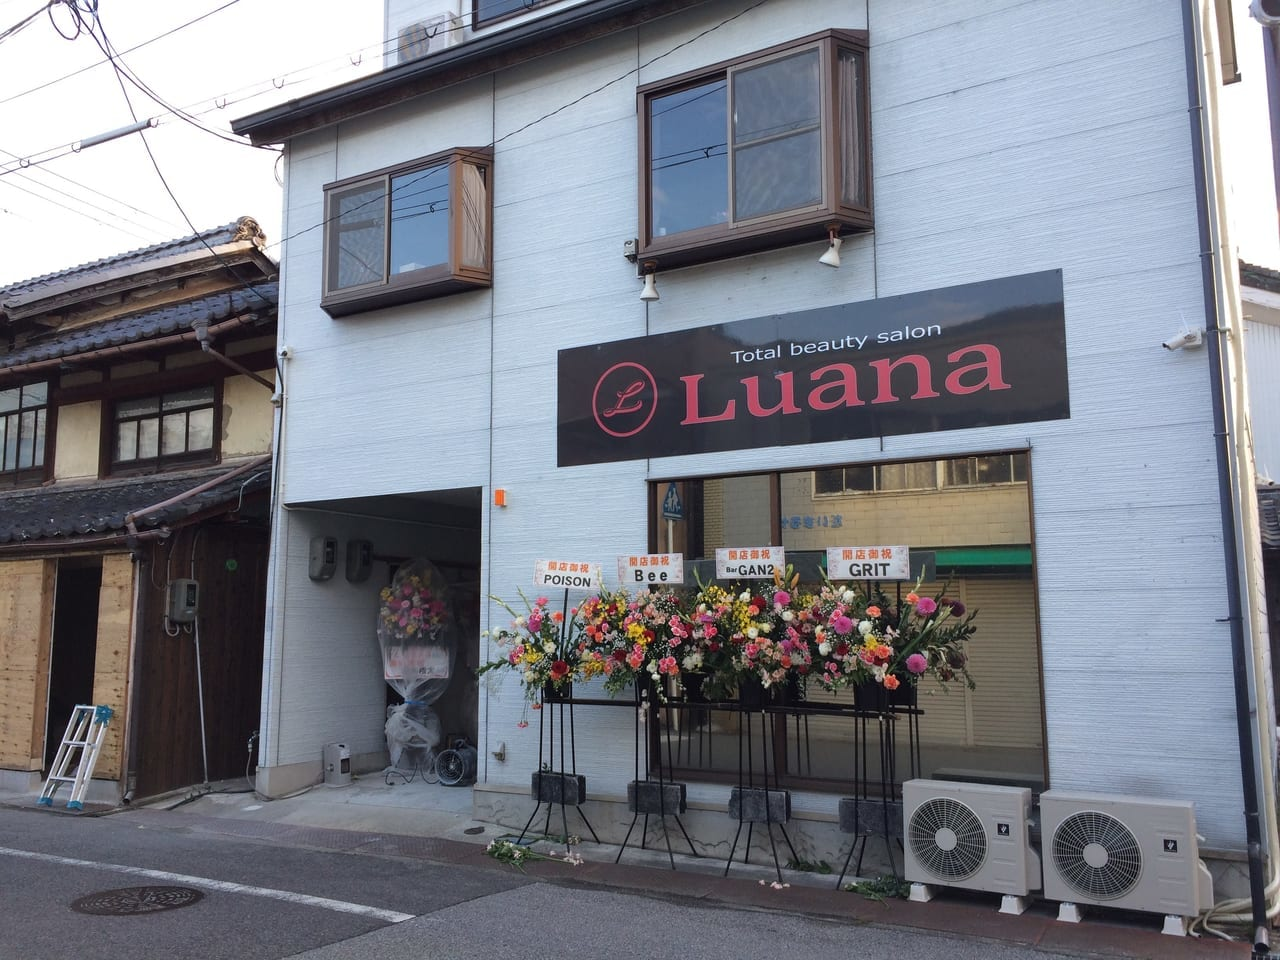 Total beauty salon Luanaの外観